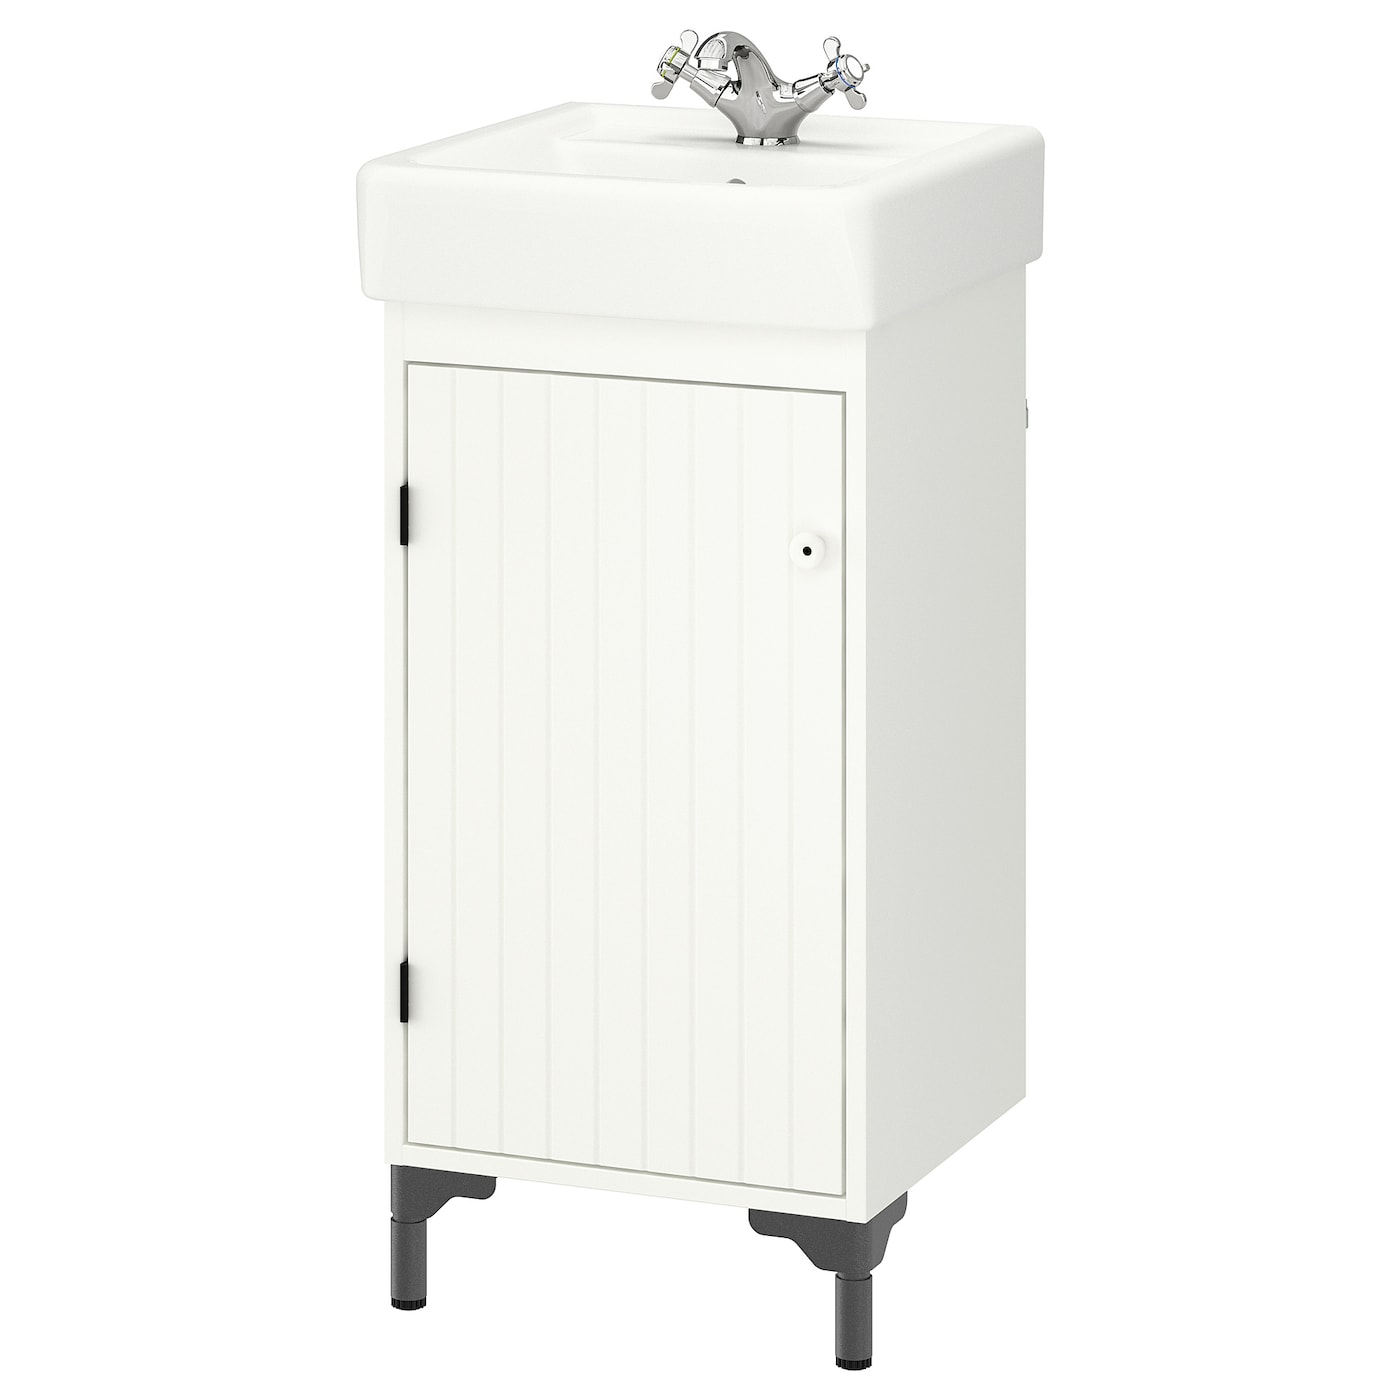 IKEA SILVERÅN/HAMNVIKEN wash-basin cabinet with 1 door A good solution if you are short of space.